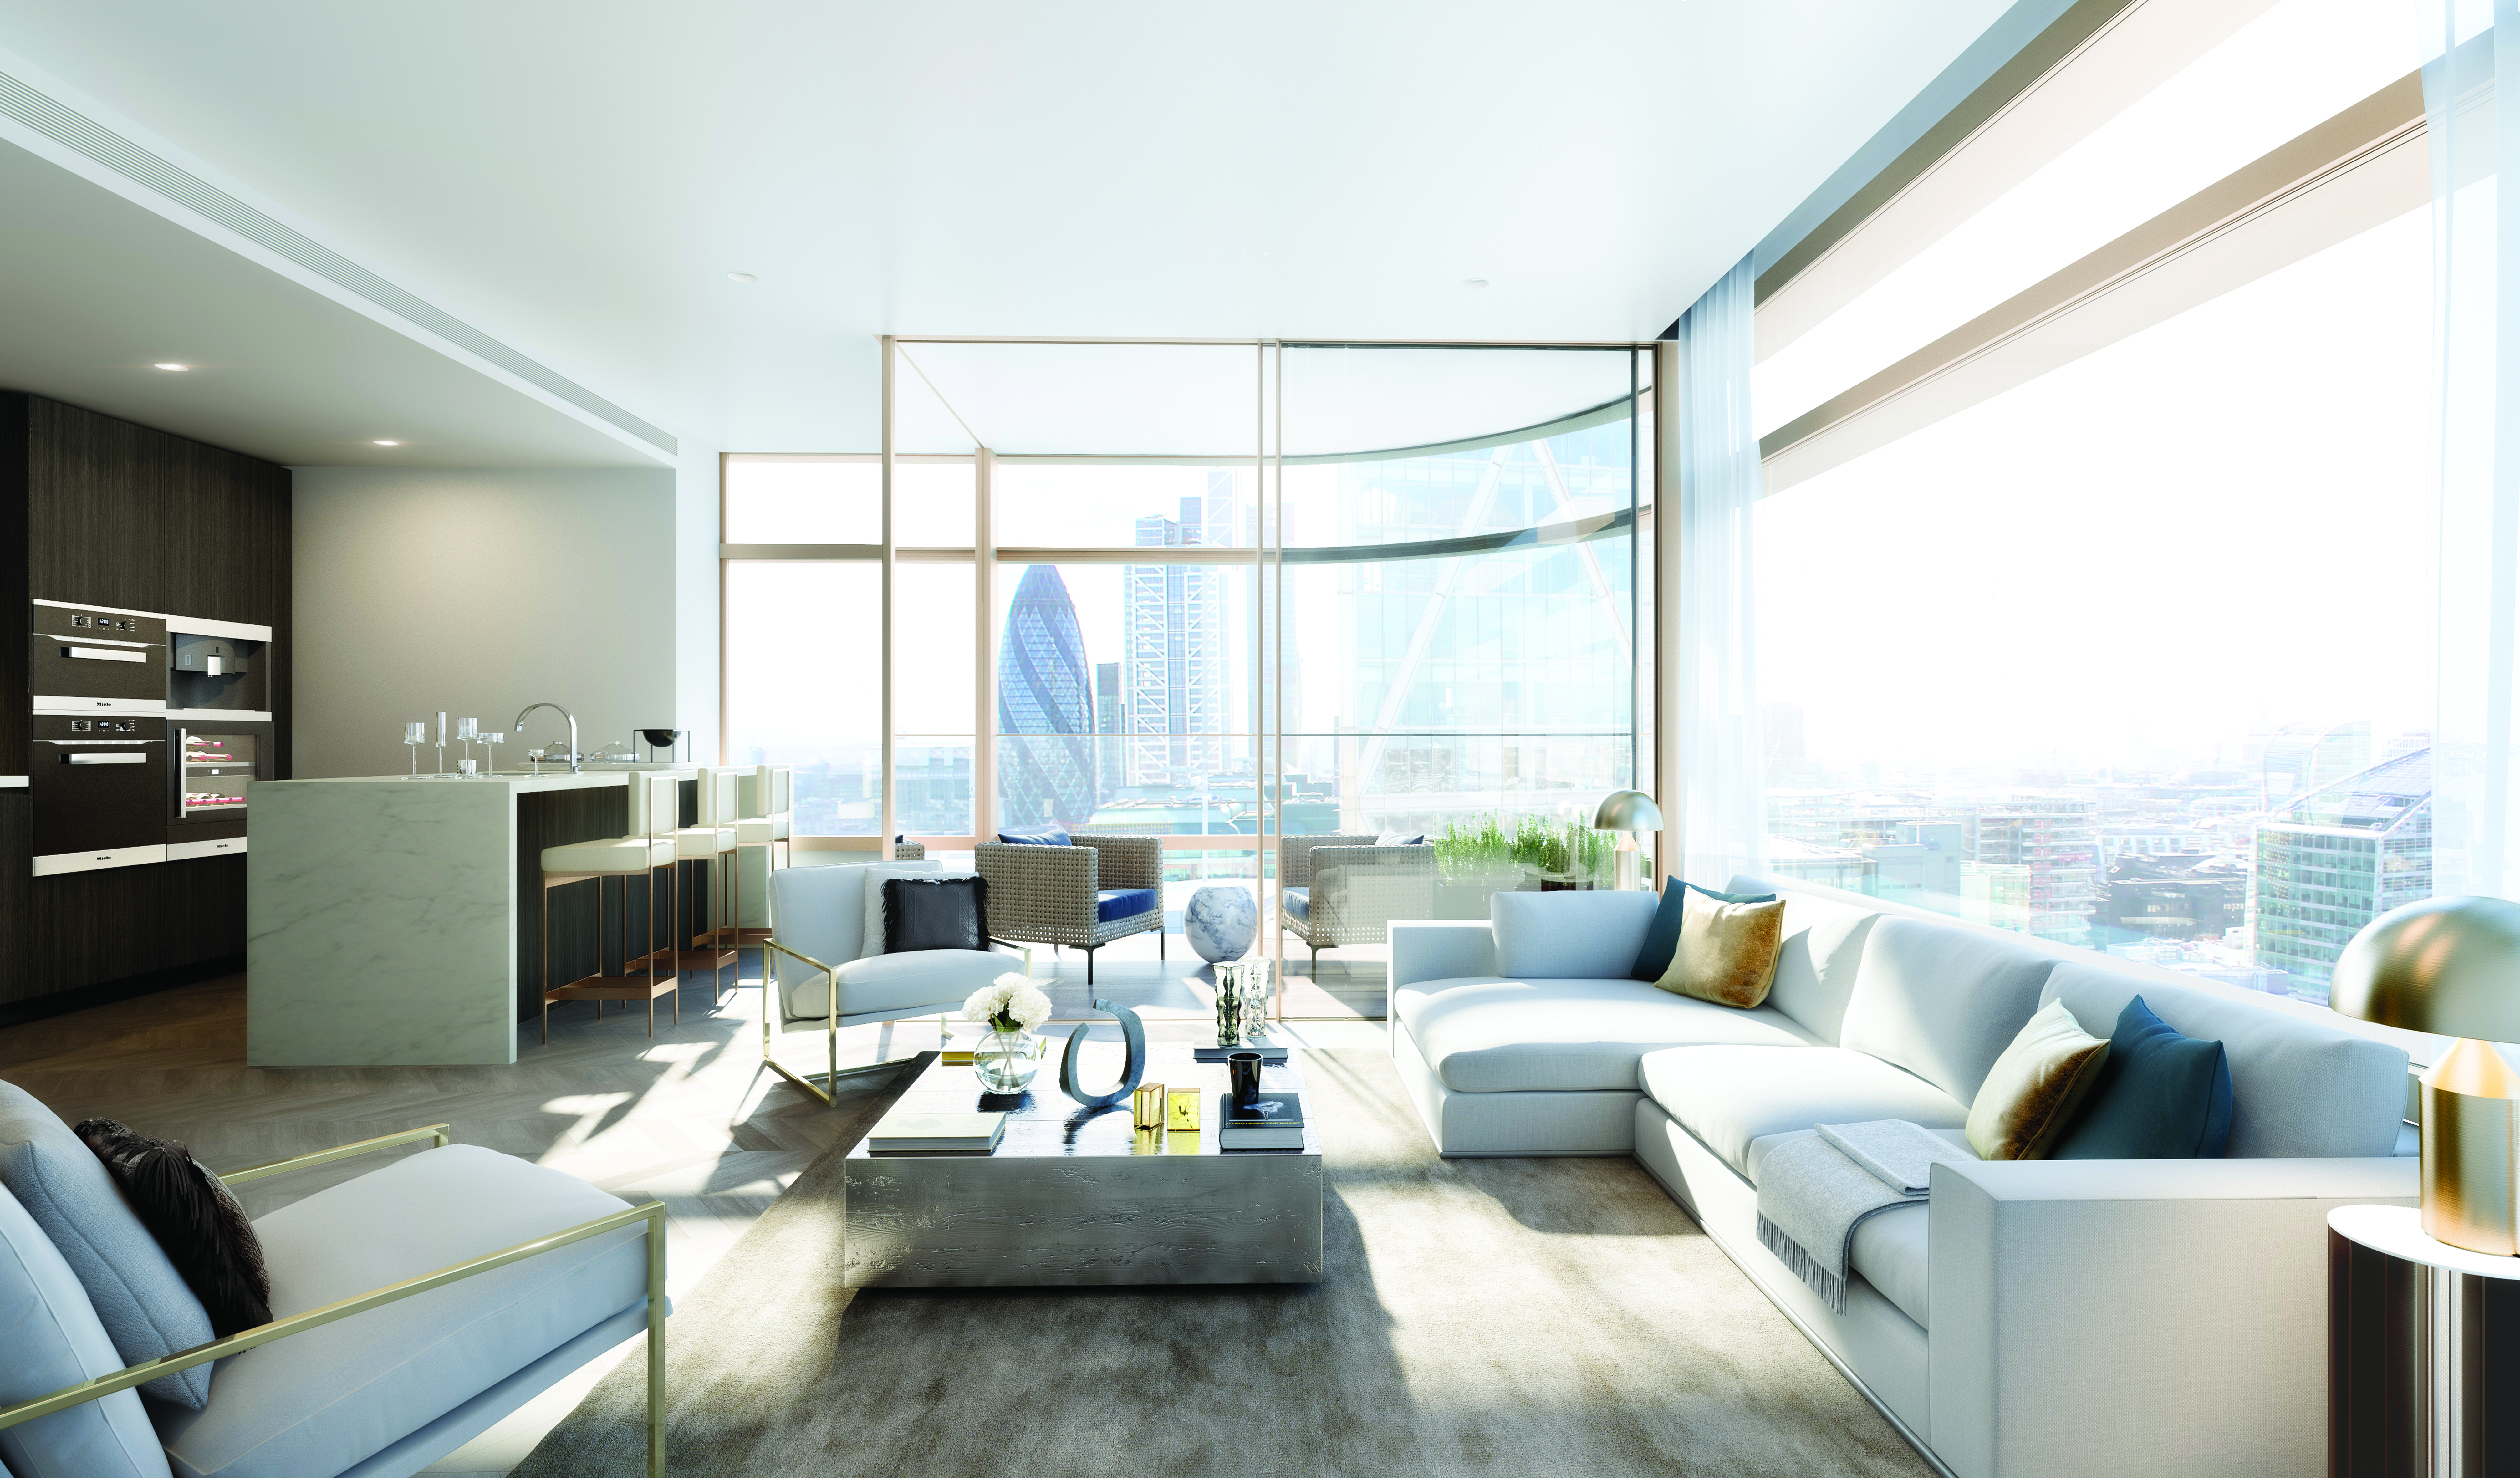 Why live in Principal Tower